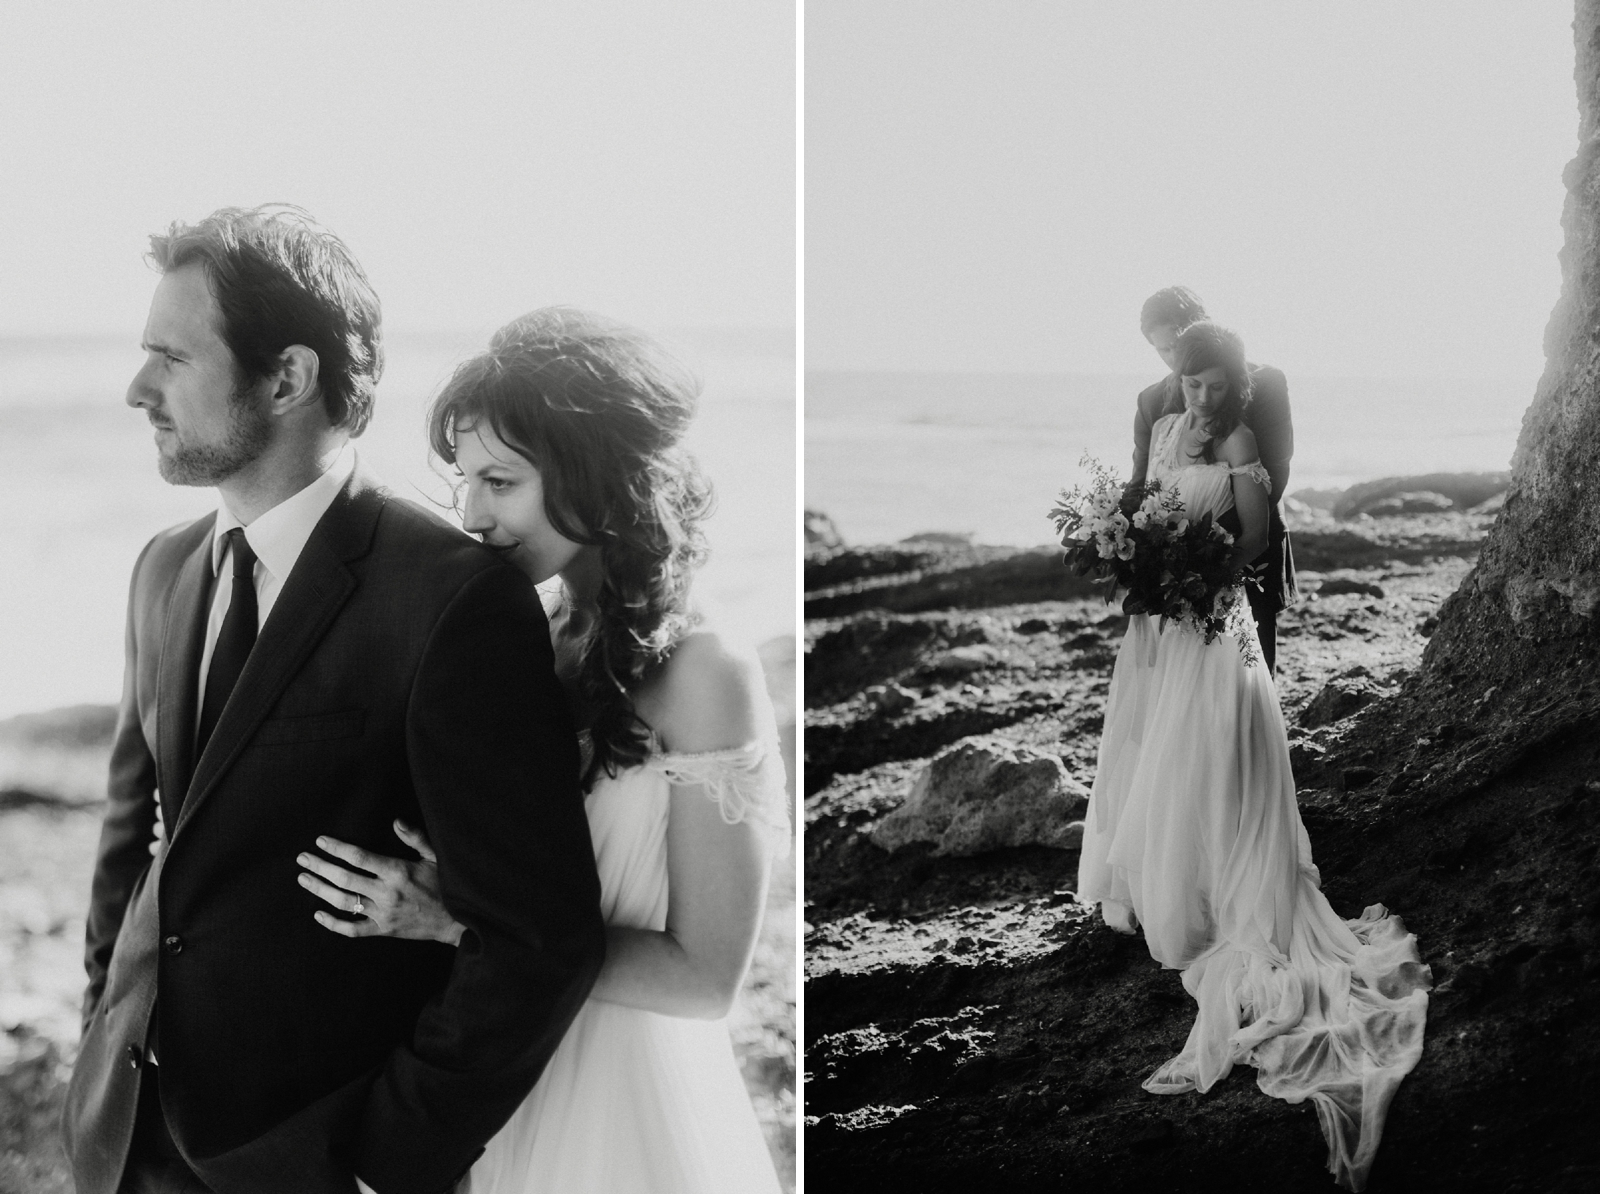 Kevin+Angie-Married-Blog-00038.jpg